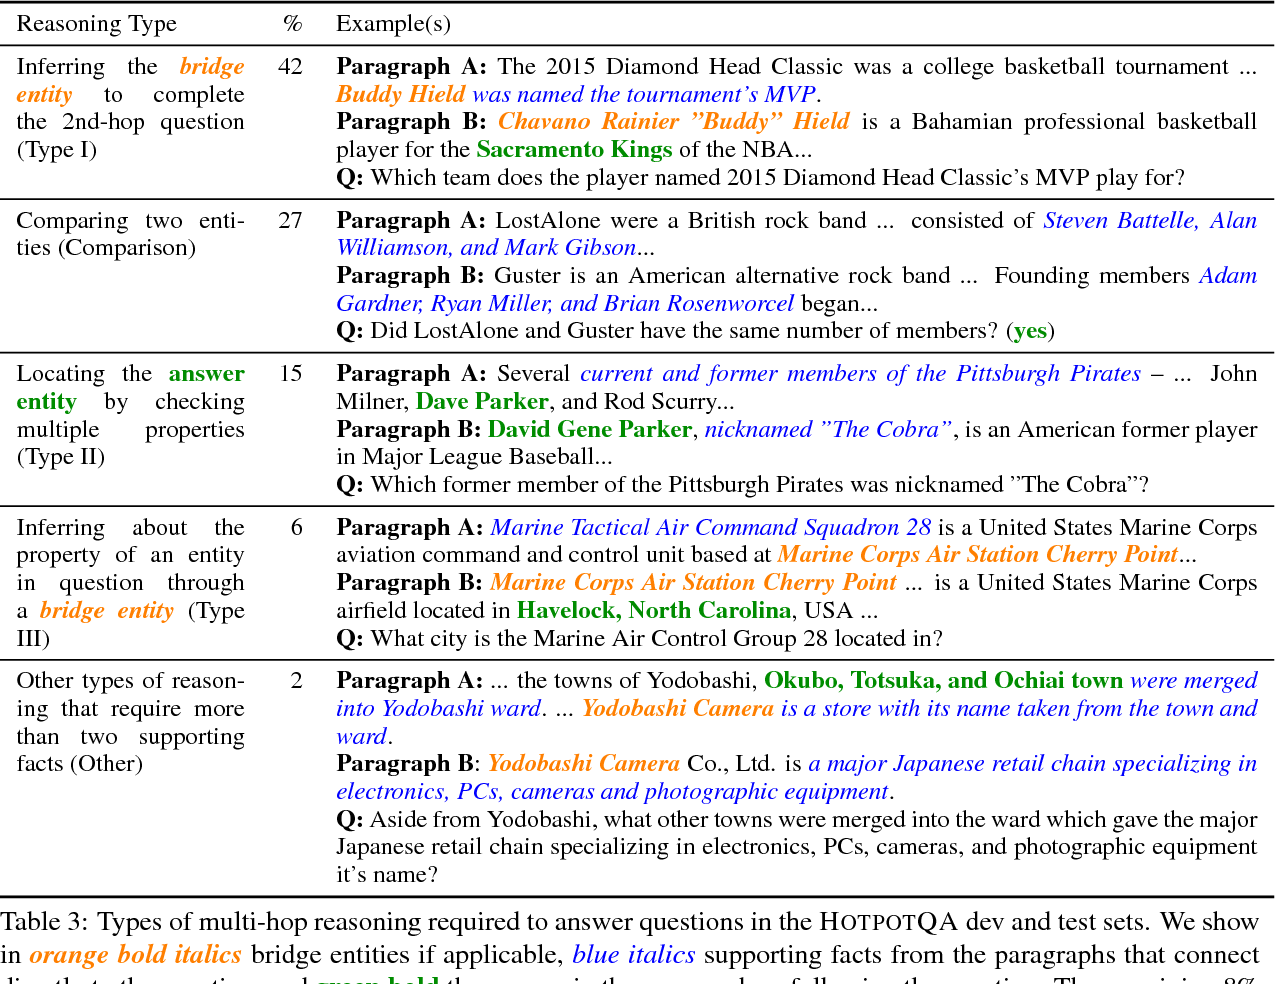 Figure 4 for HotpotQA: A Dataset for Diverse, Explainable Multi-hop Question Answering